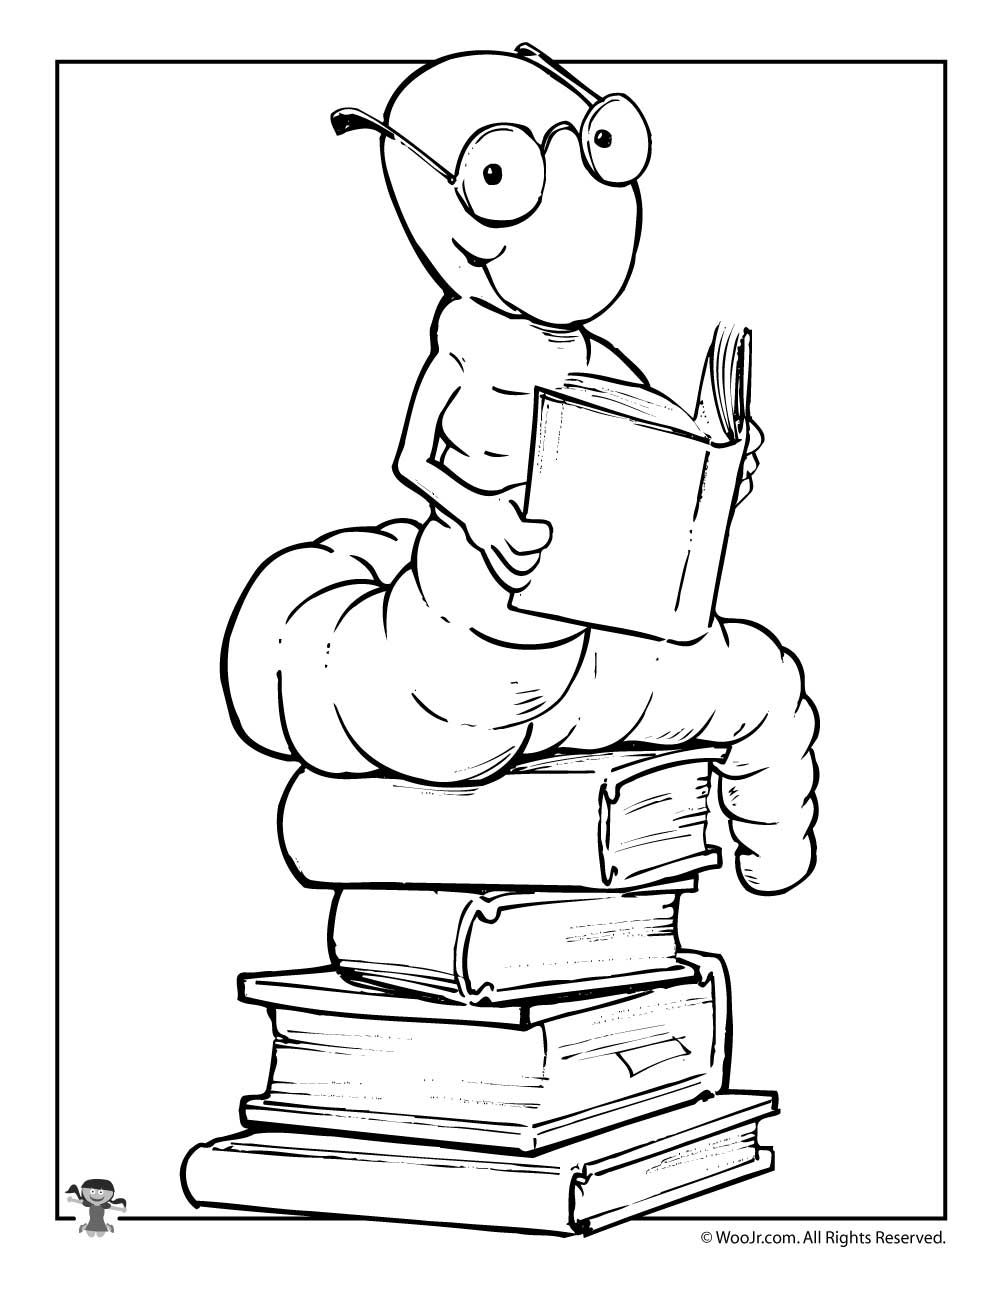 Printable Library Activities Coloring Pages Word Puzzles Hidden Pictures Woo Jr Kids Activities Kids Coloring Books Coloring Pages Pattern Coloring Pages